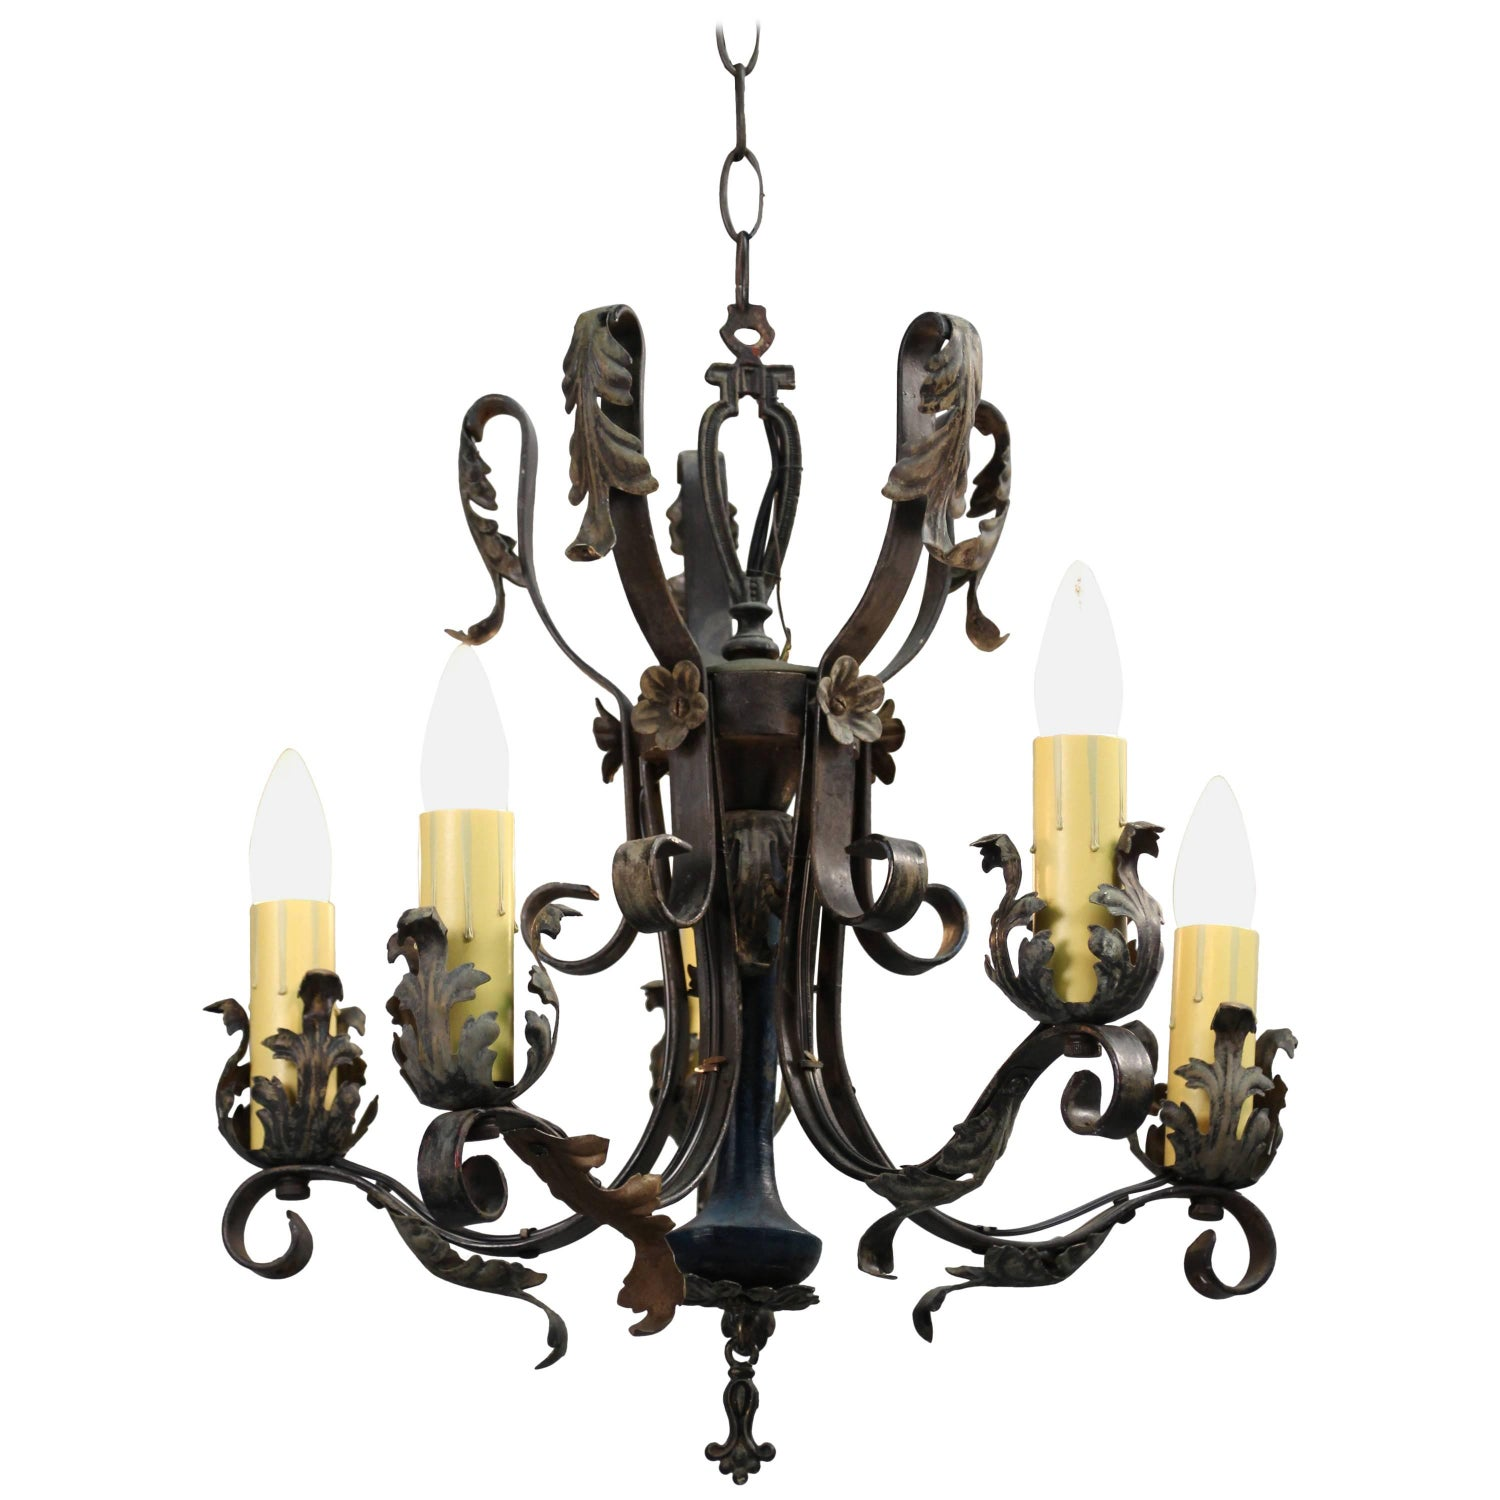 Spanish Colonial Chandeliers and Pendants 90 For Sale at 1stdibs